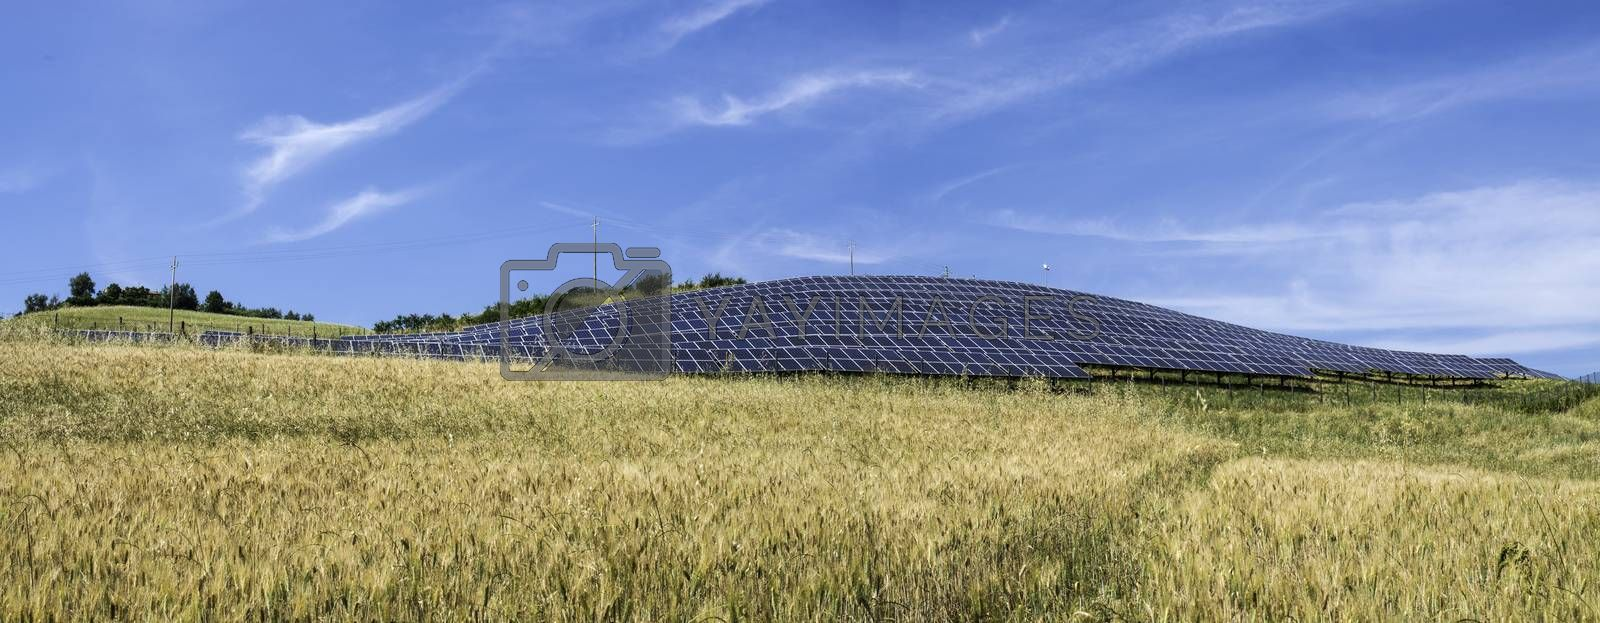 Solar panels in rural. Blue sky